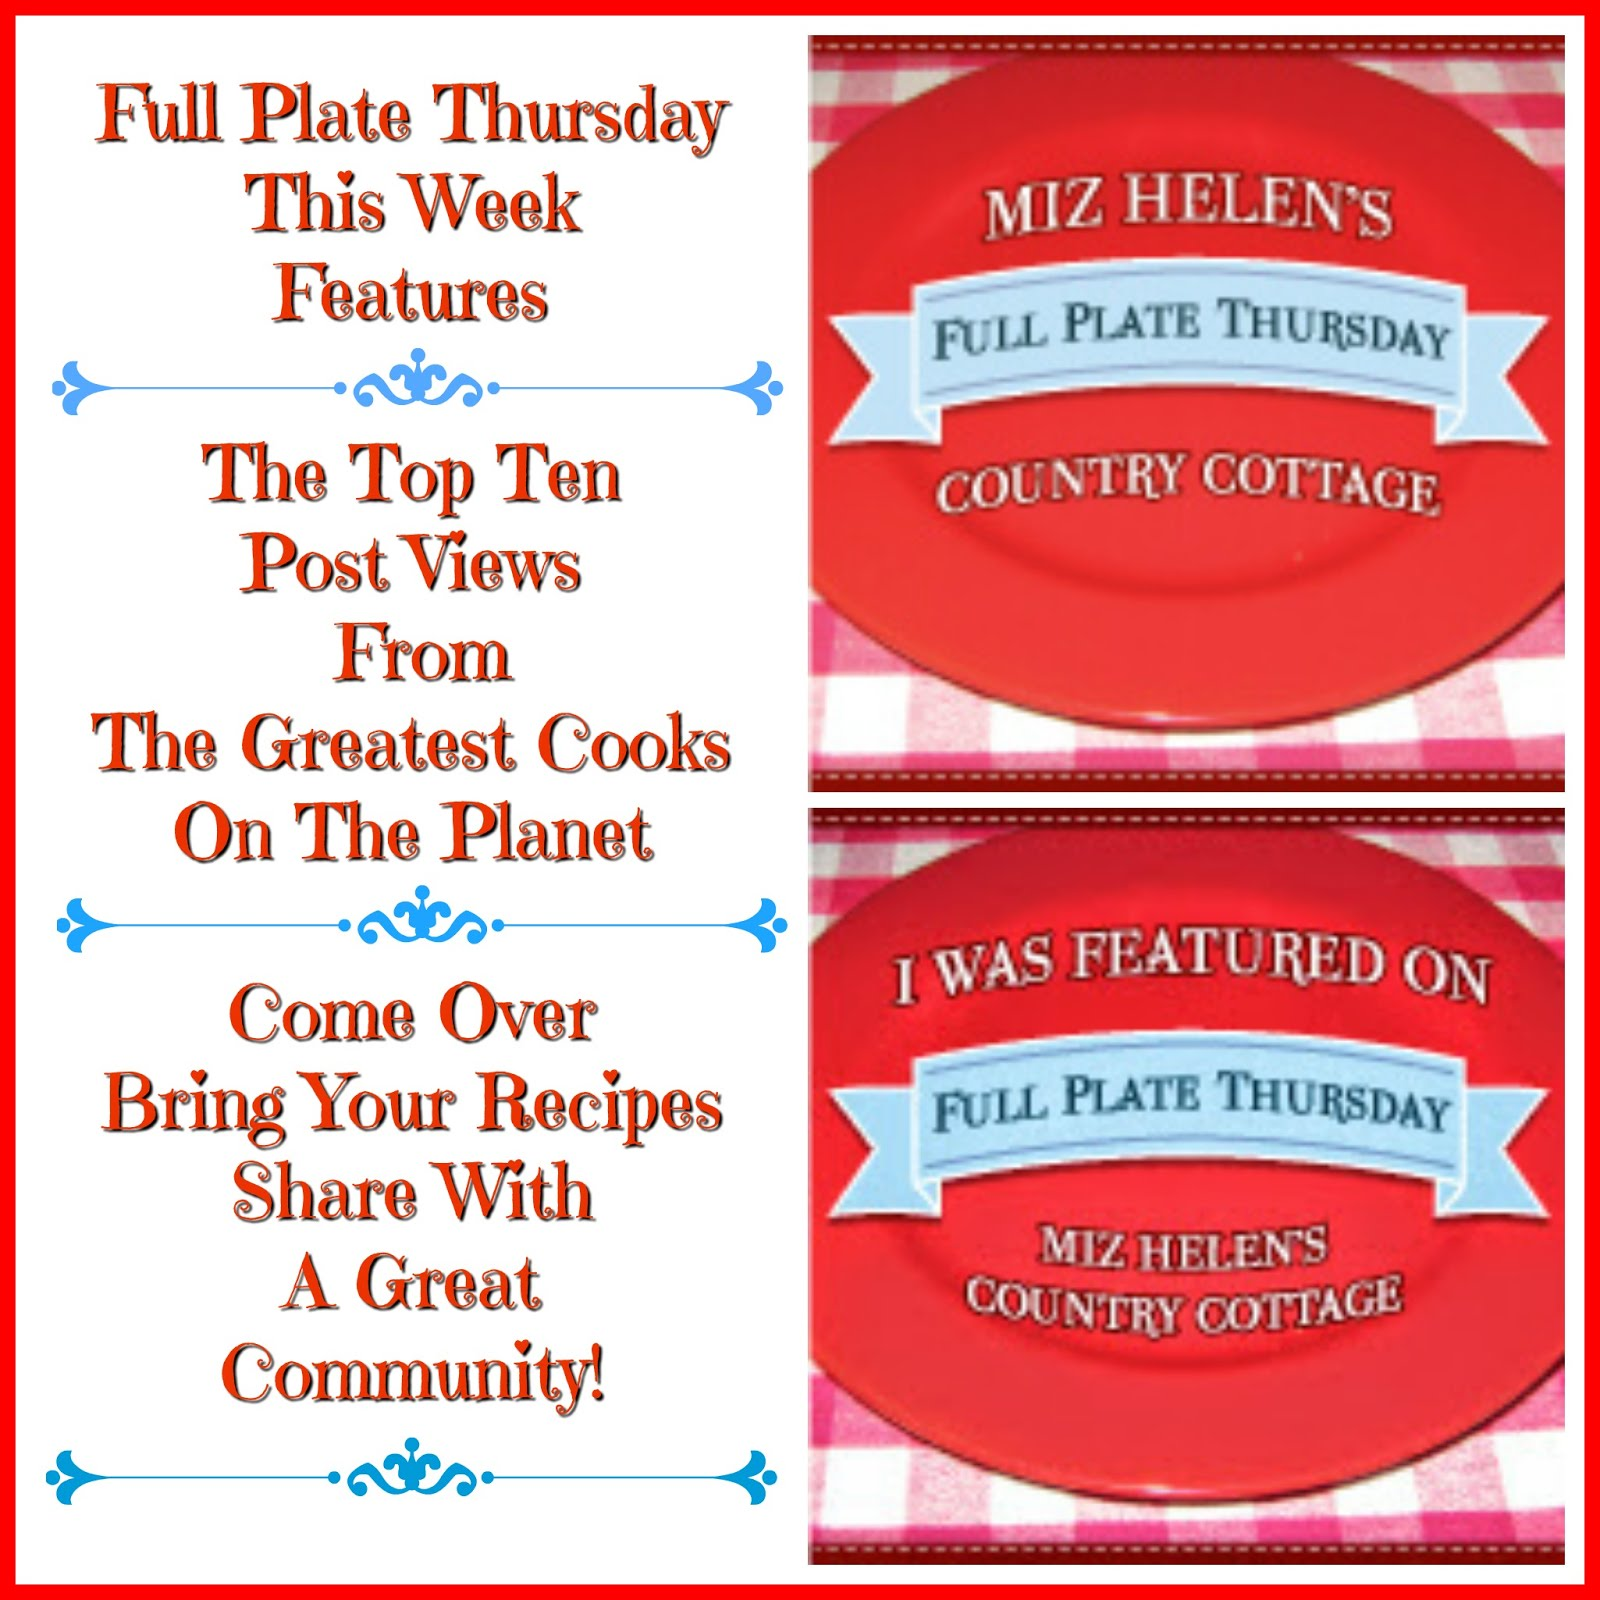 Full Plate Thursday, 508